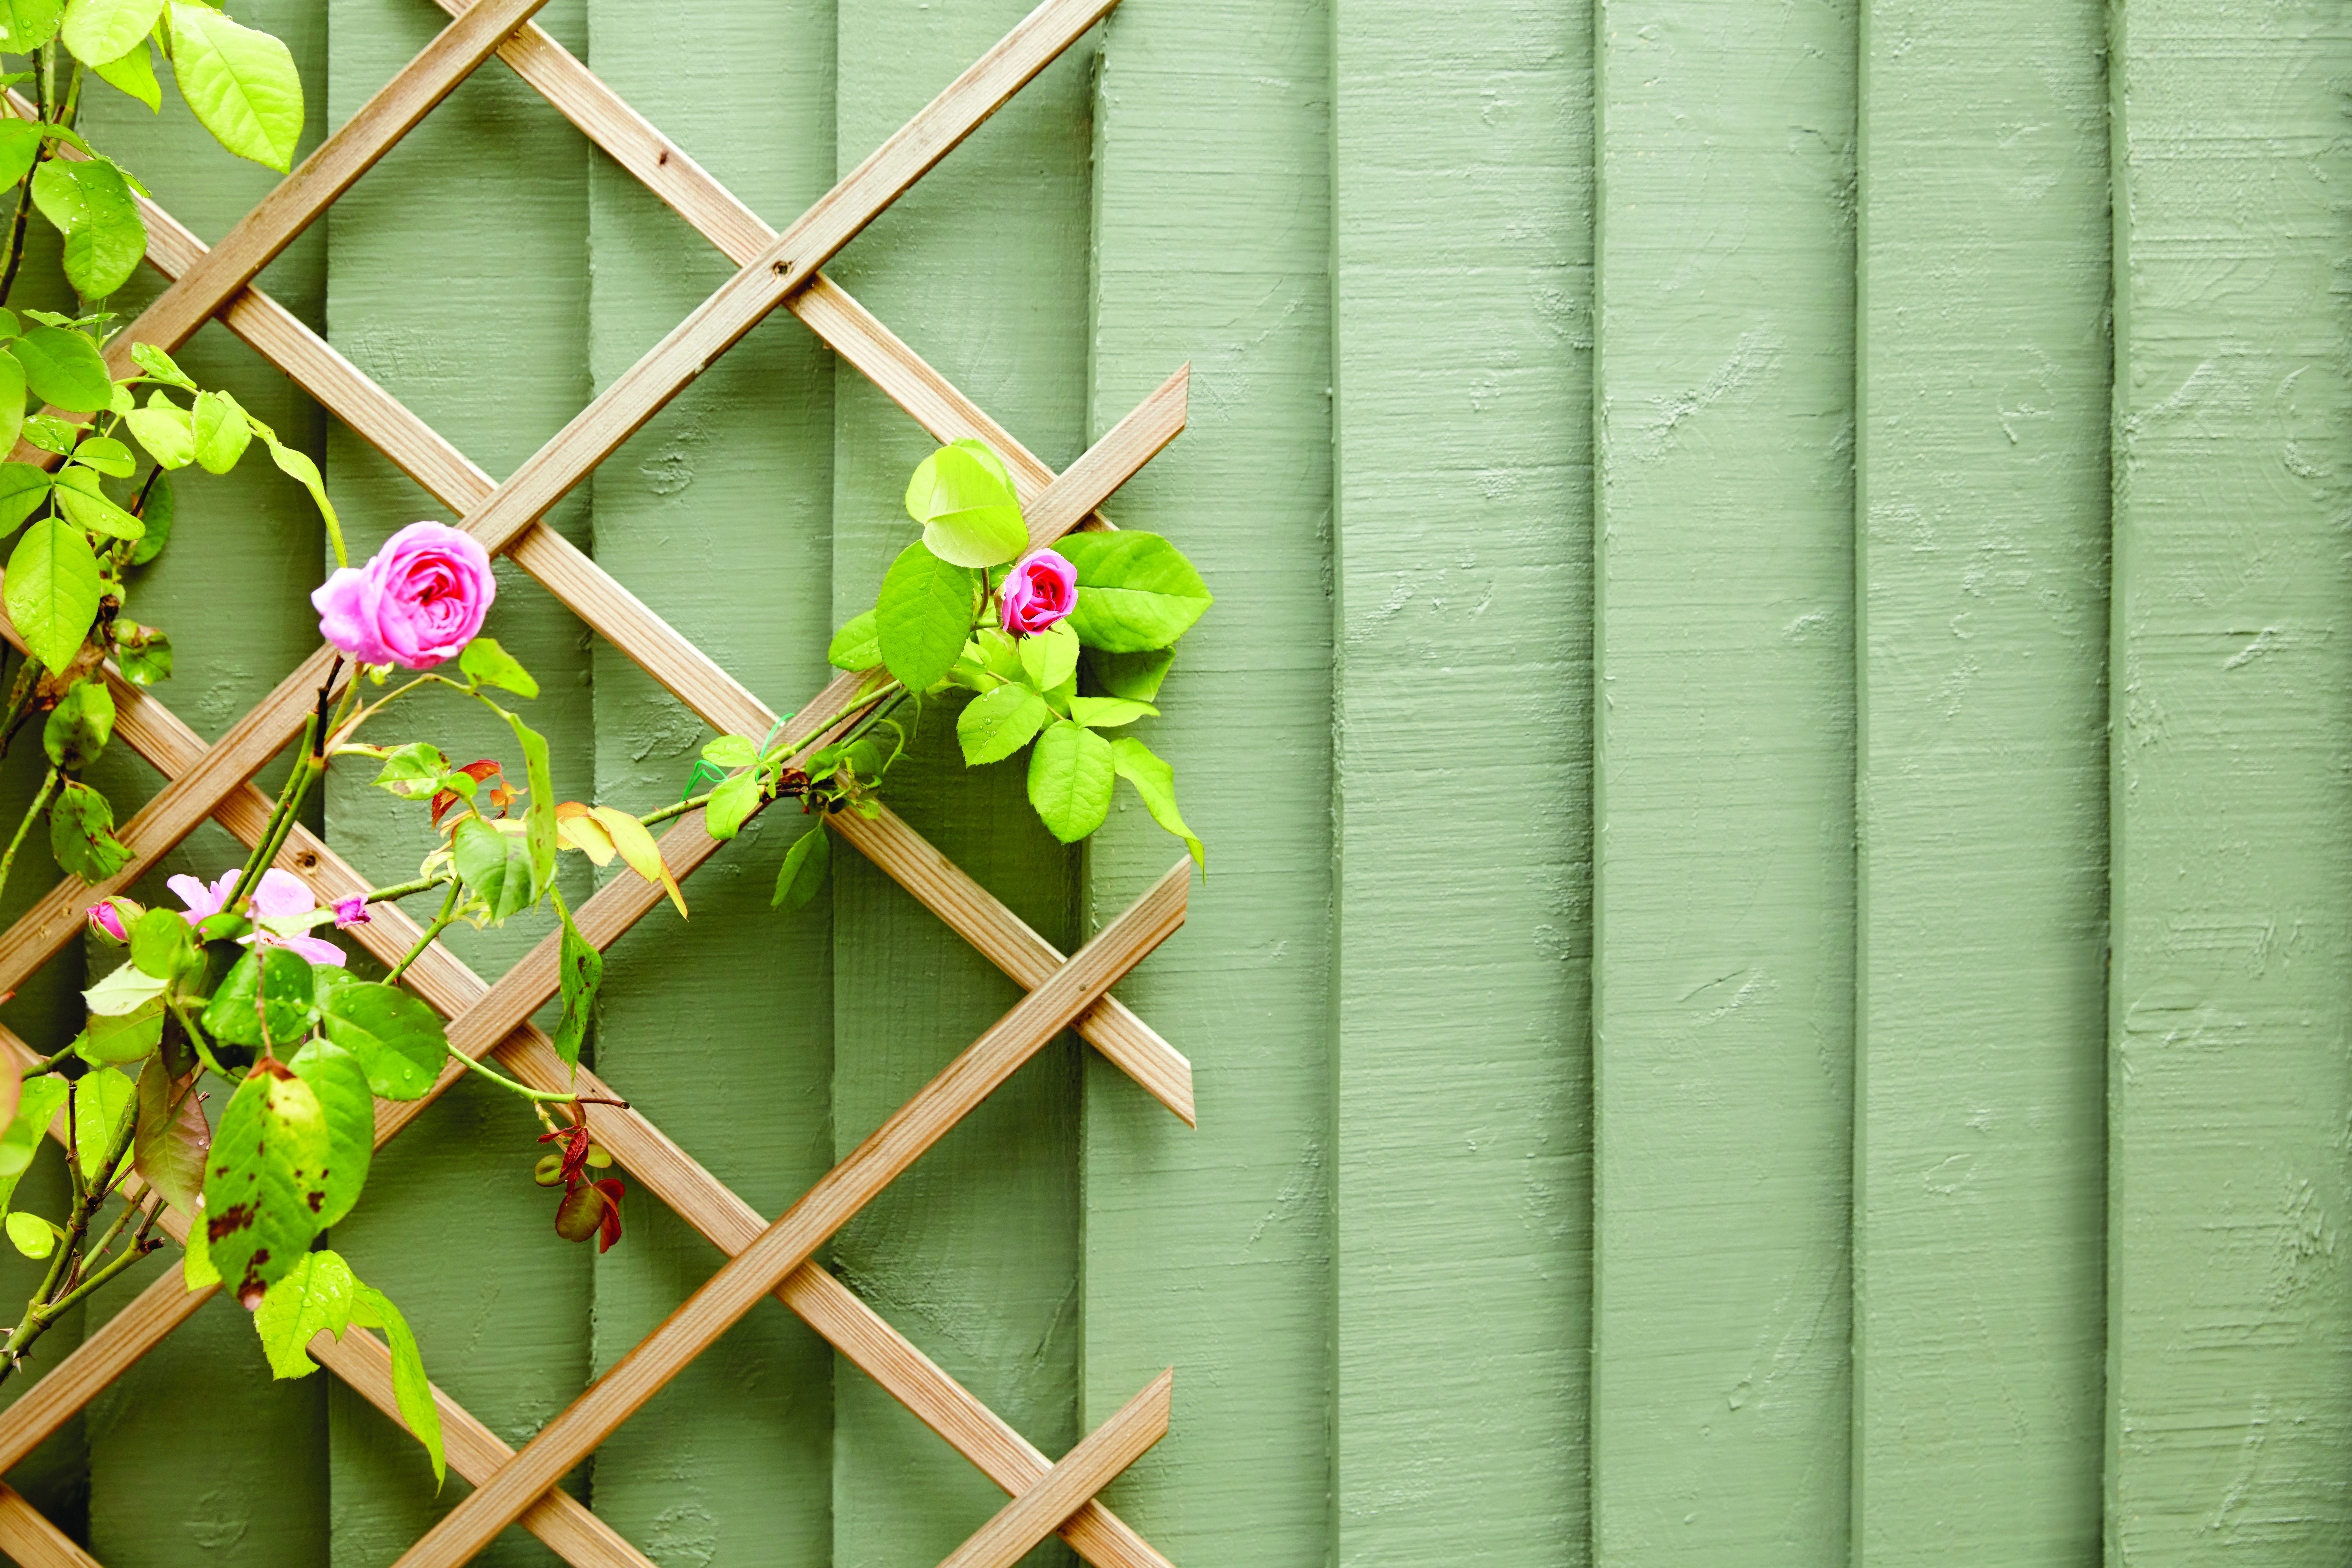 howto paint garden fence panels